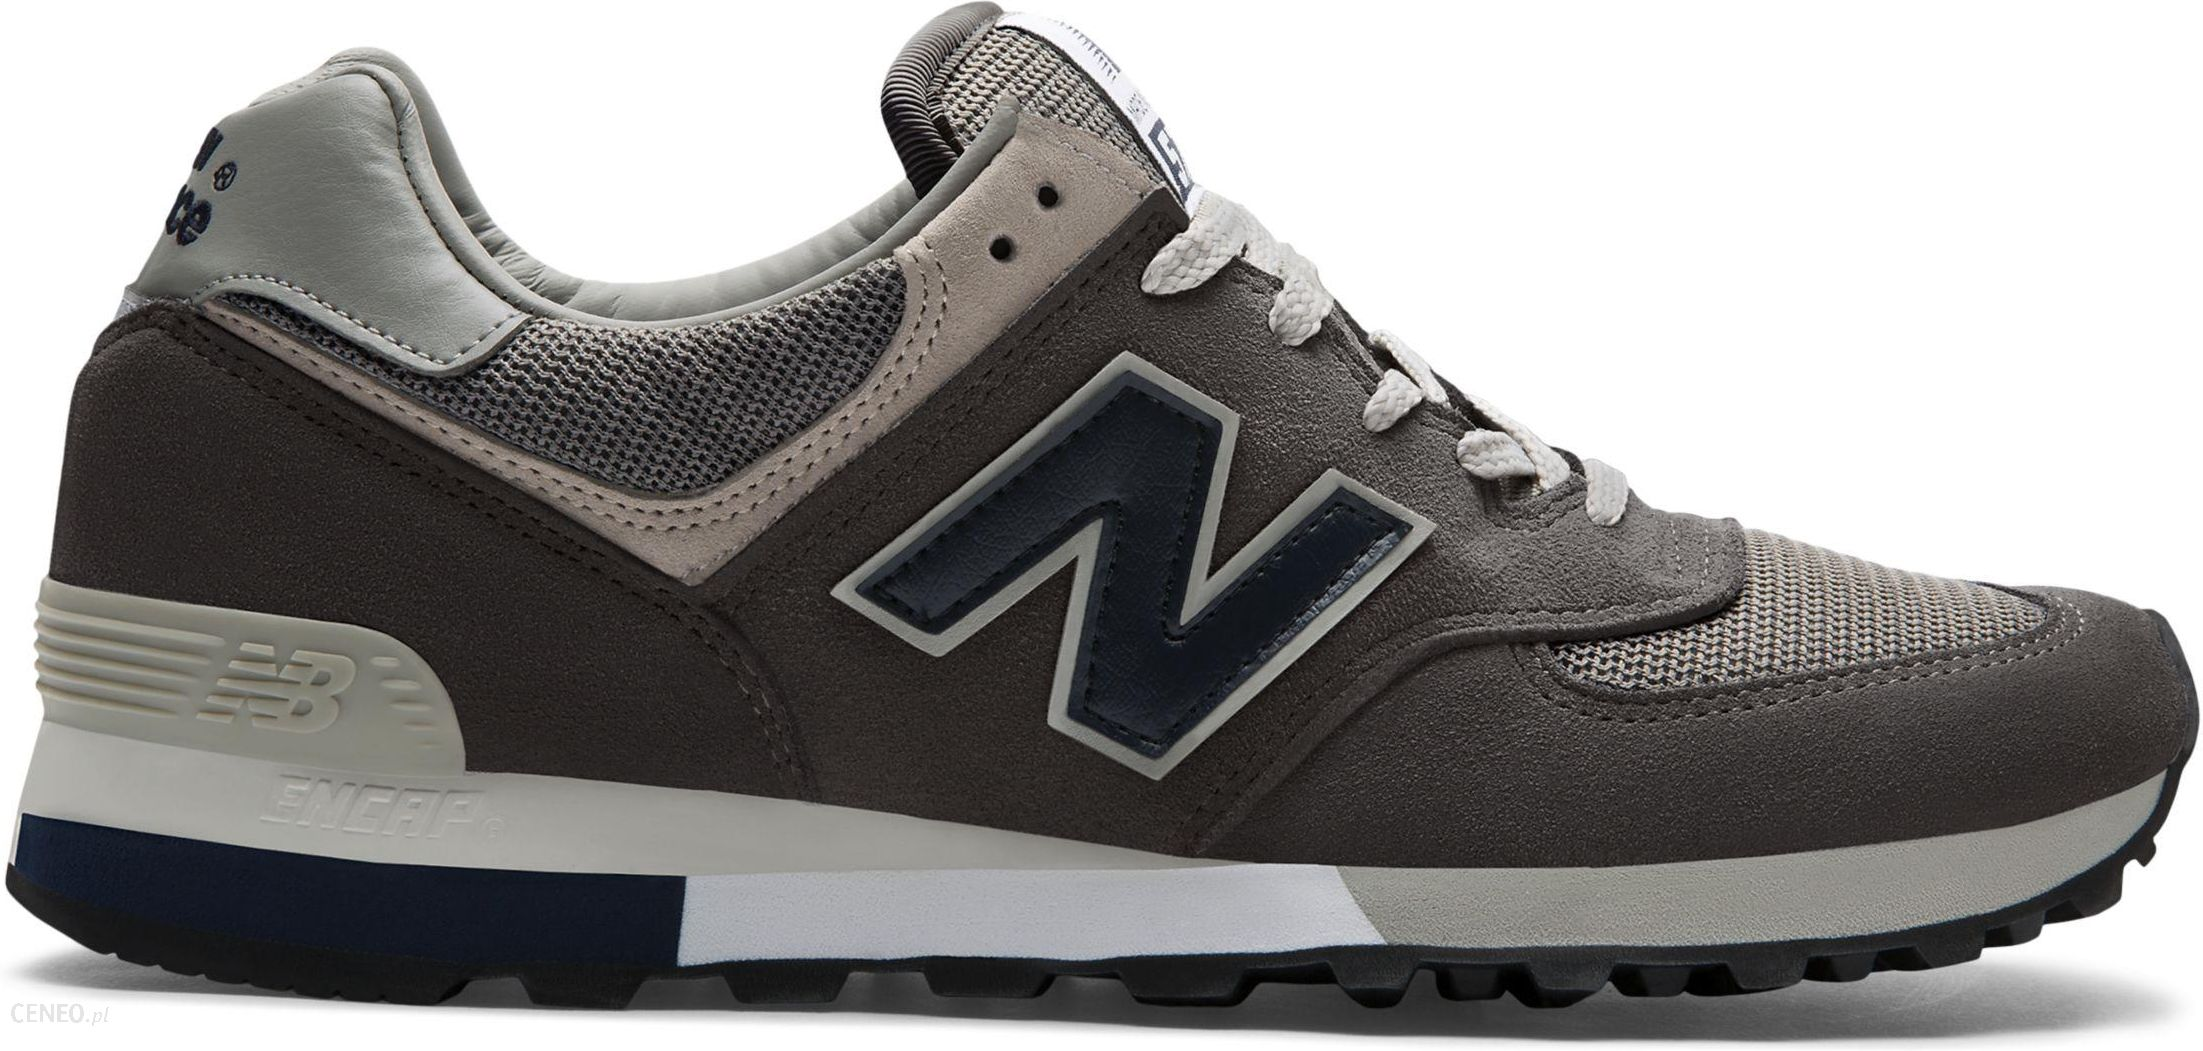 low priced 9fb3b 472f6 New Balance 576 Made in UK Grey with Navy (OM576OGG) - Ceneo.pl